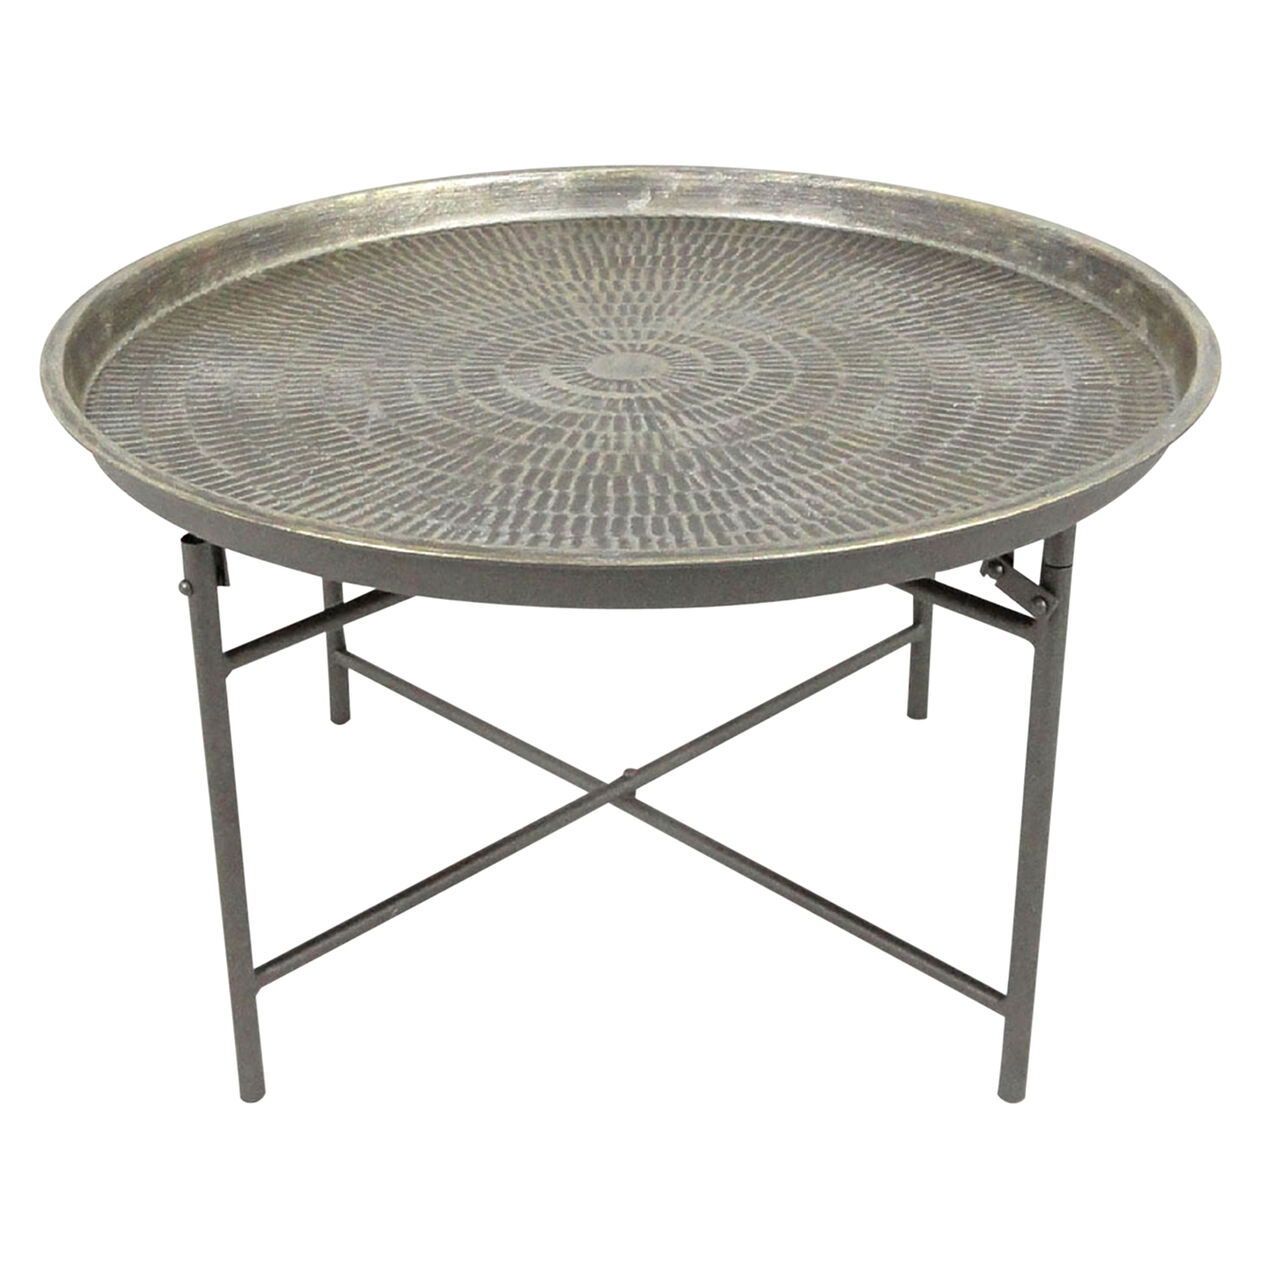 Round metal coffee table round metal coffee table at home 124145460 124145460html Round espresso coffee table